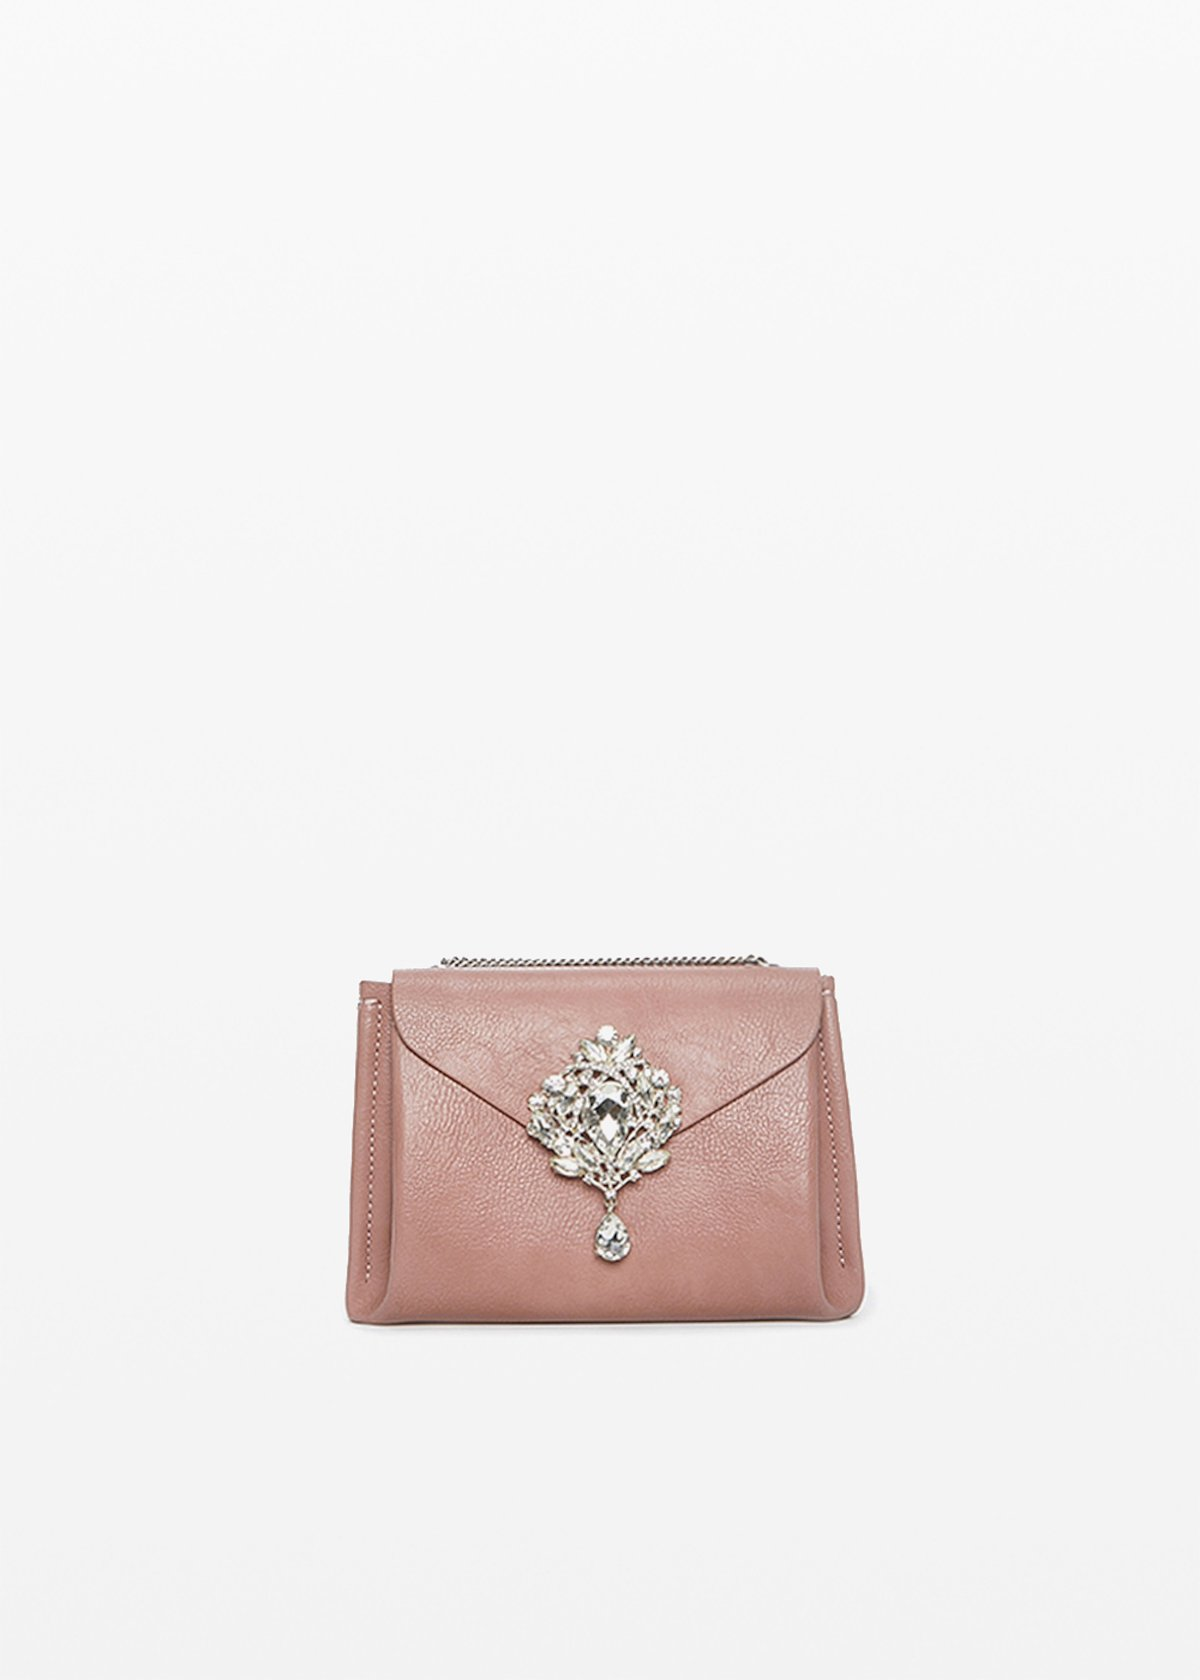 Bluey shoulder bag with chain strap - Calcite - Woman - Category image